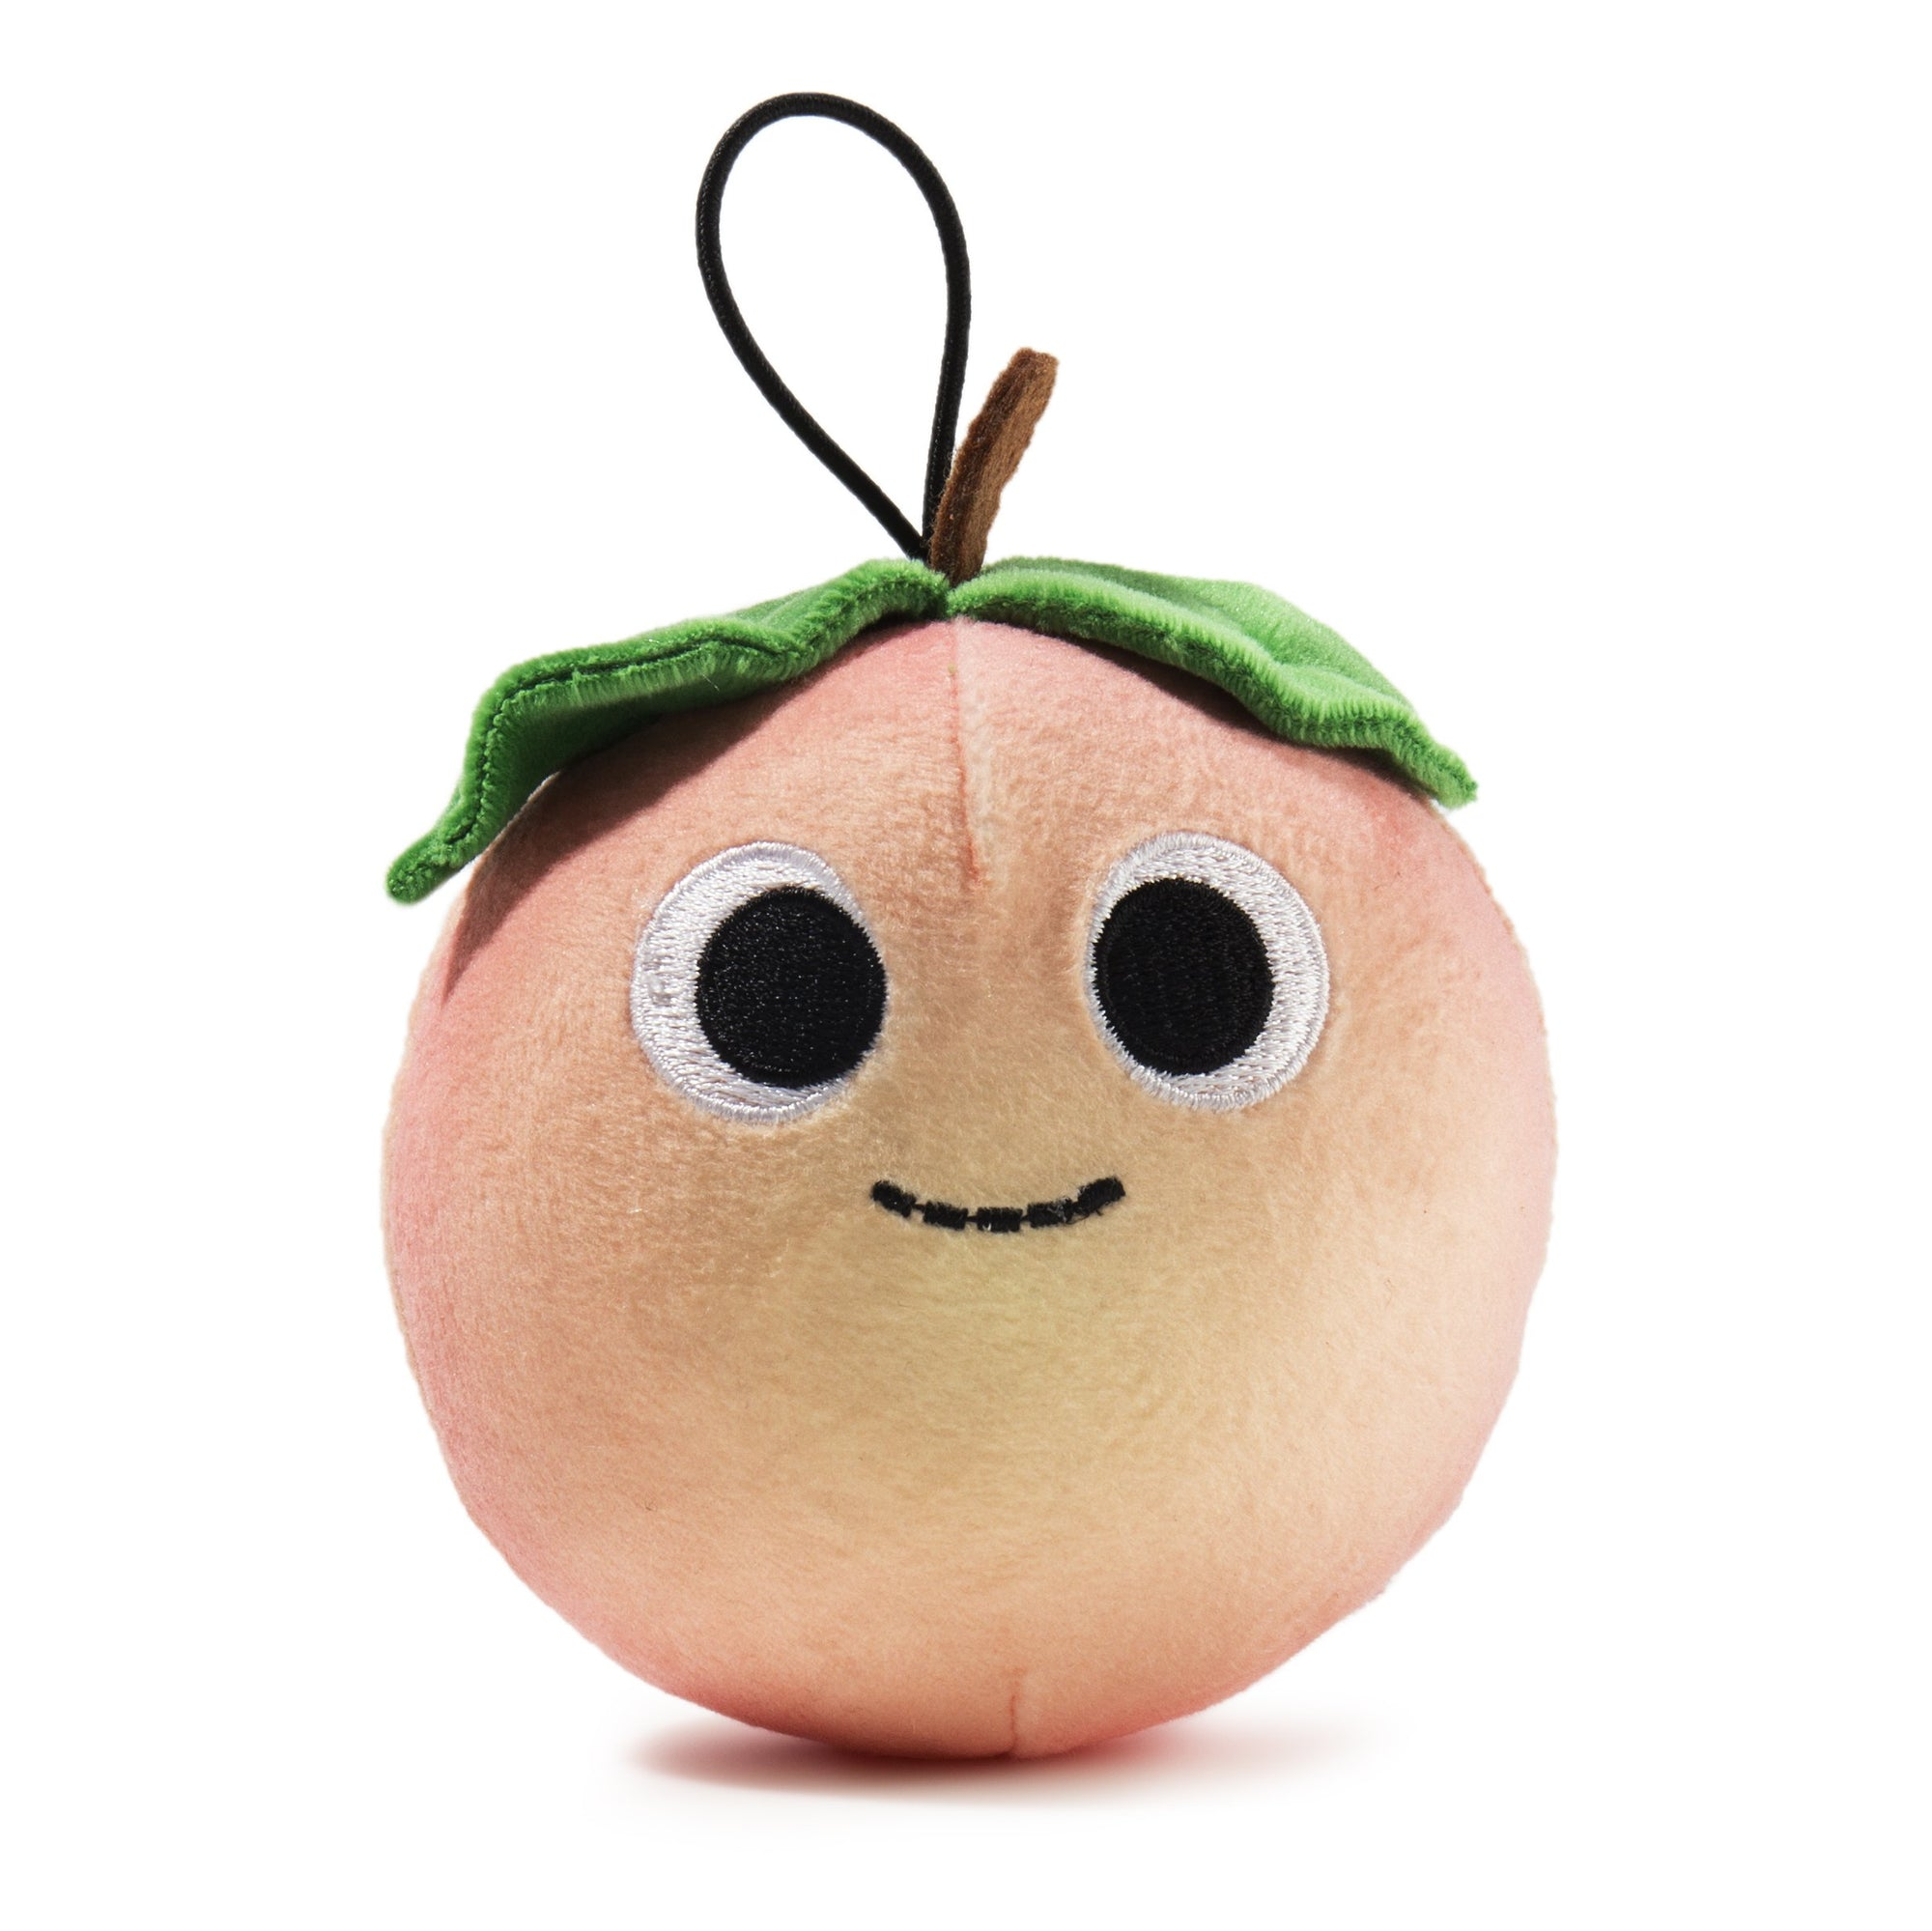 Yummy World Small Peach Plush - Kidrobot